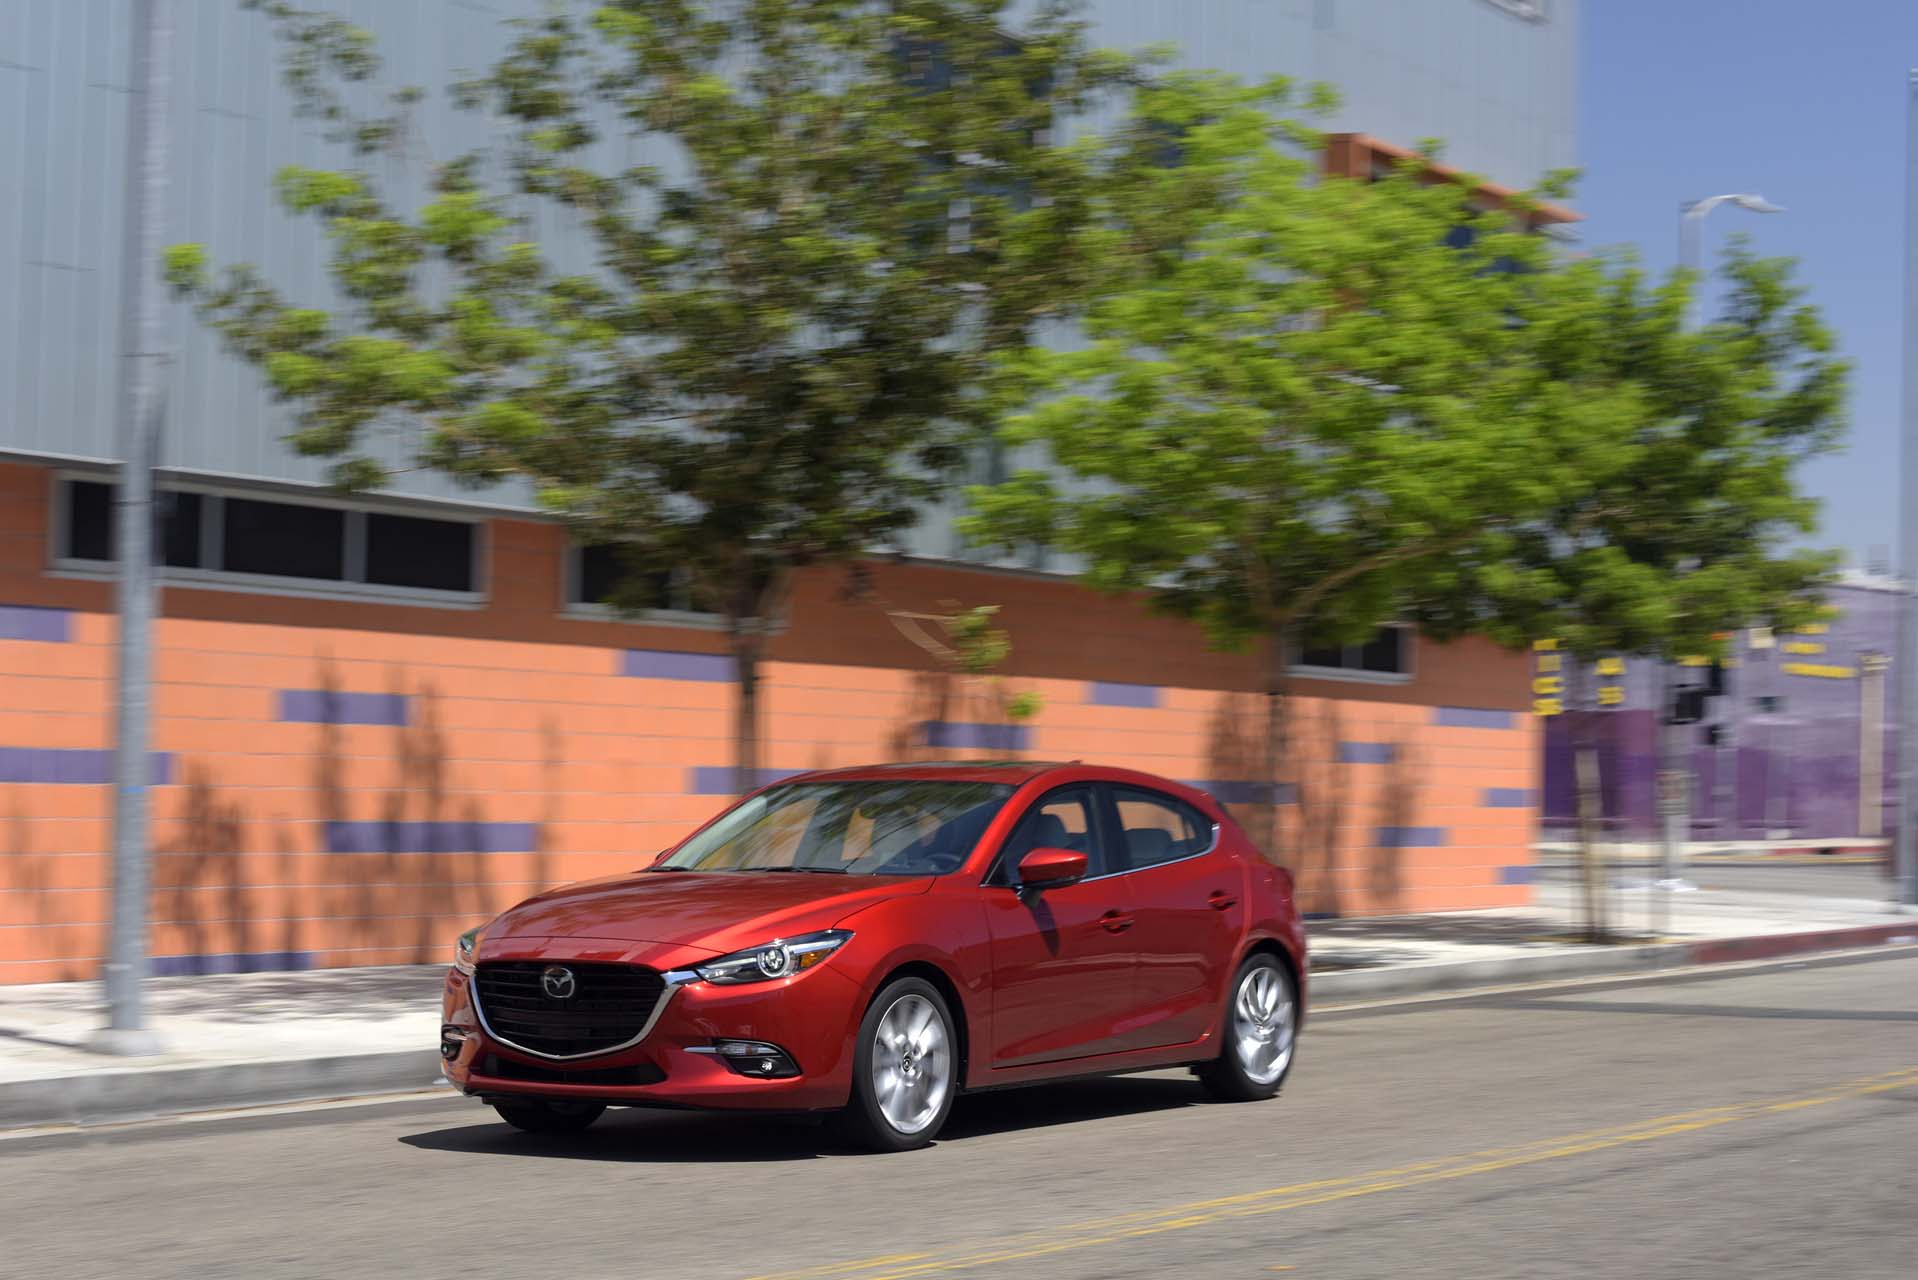 thomas mazda car sale manual owner en auto in or asp credit financing for us local at speed unitdetail miles w portland hillsboro